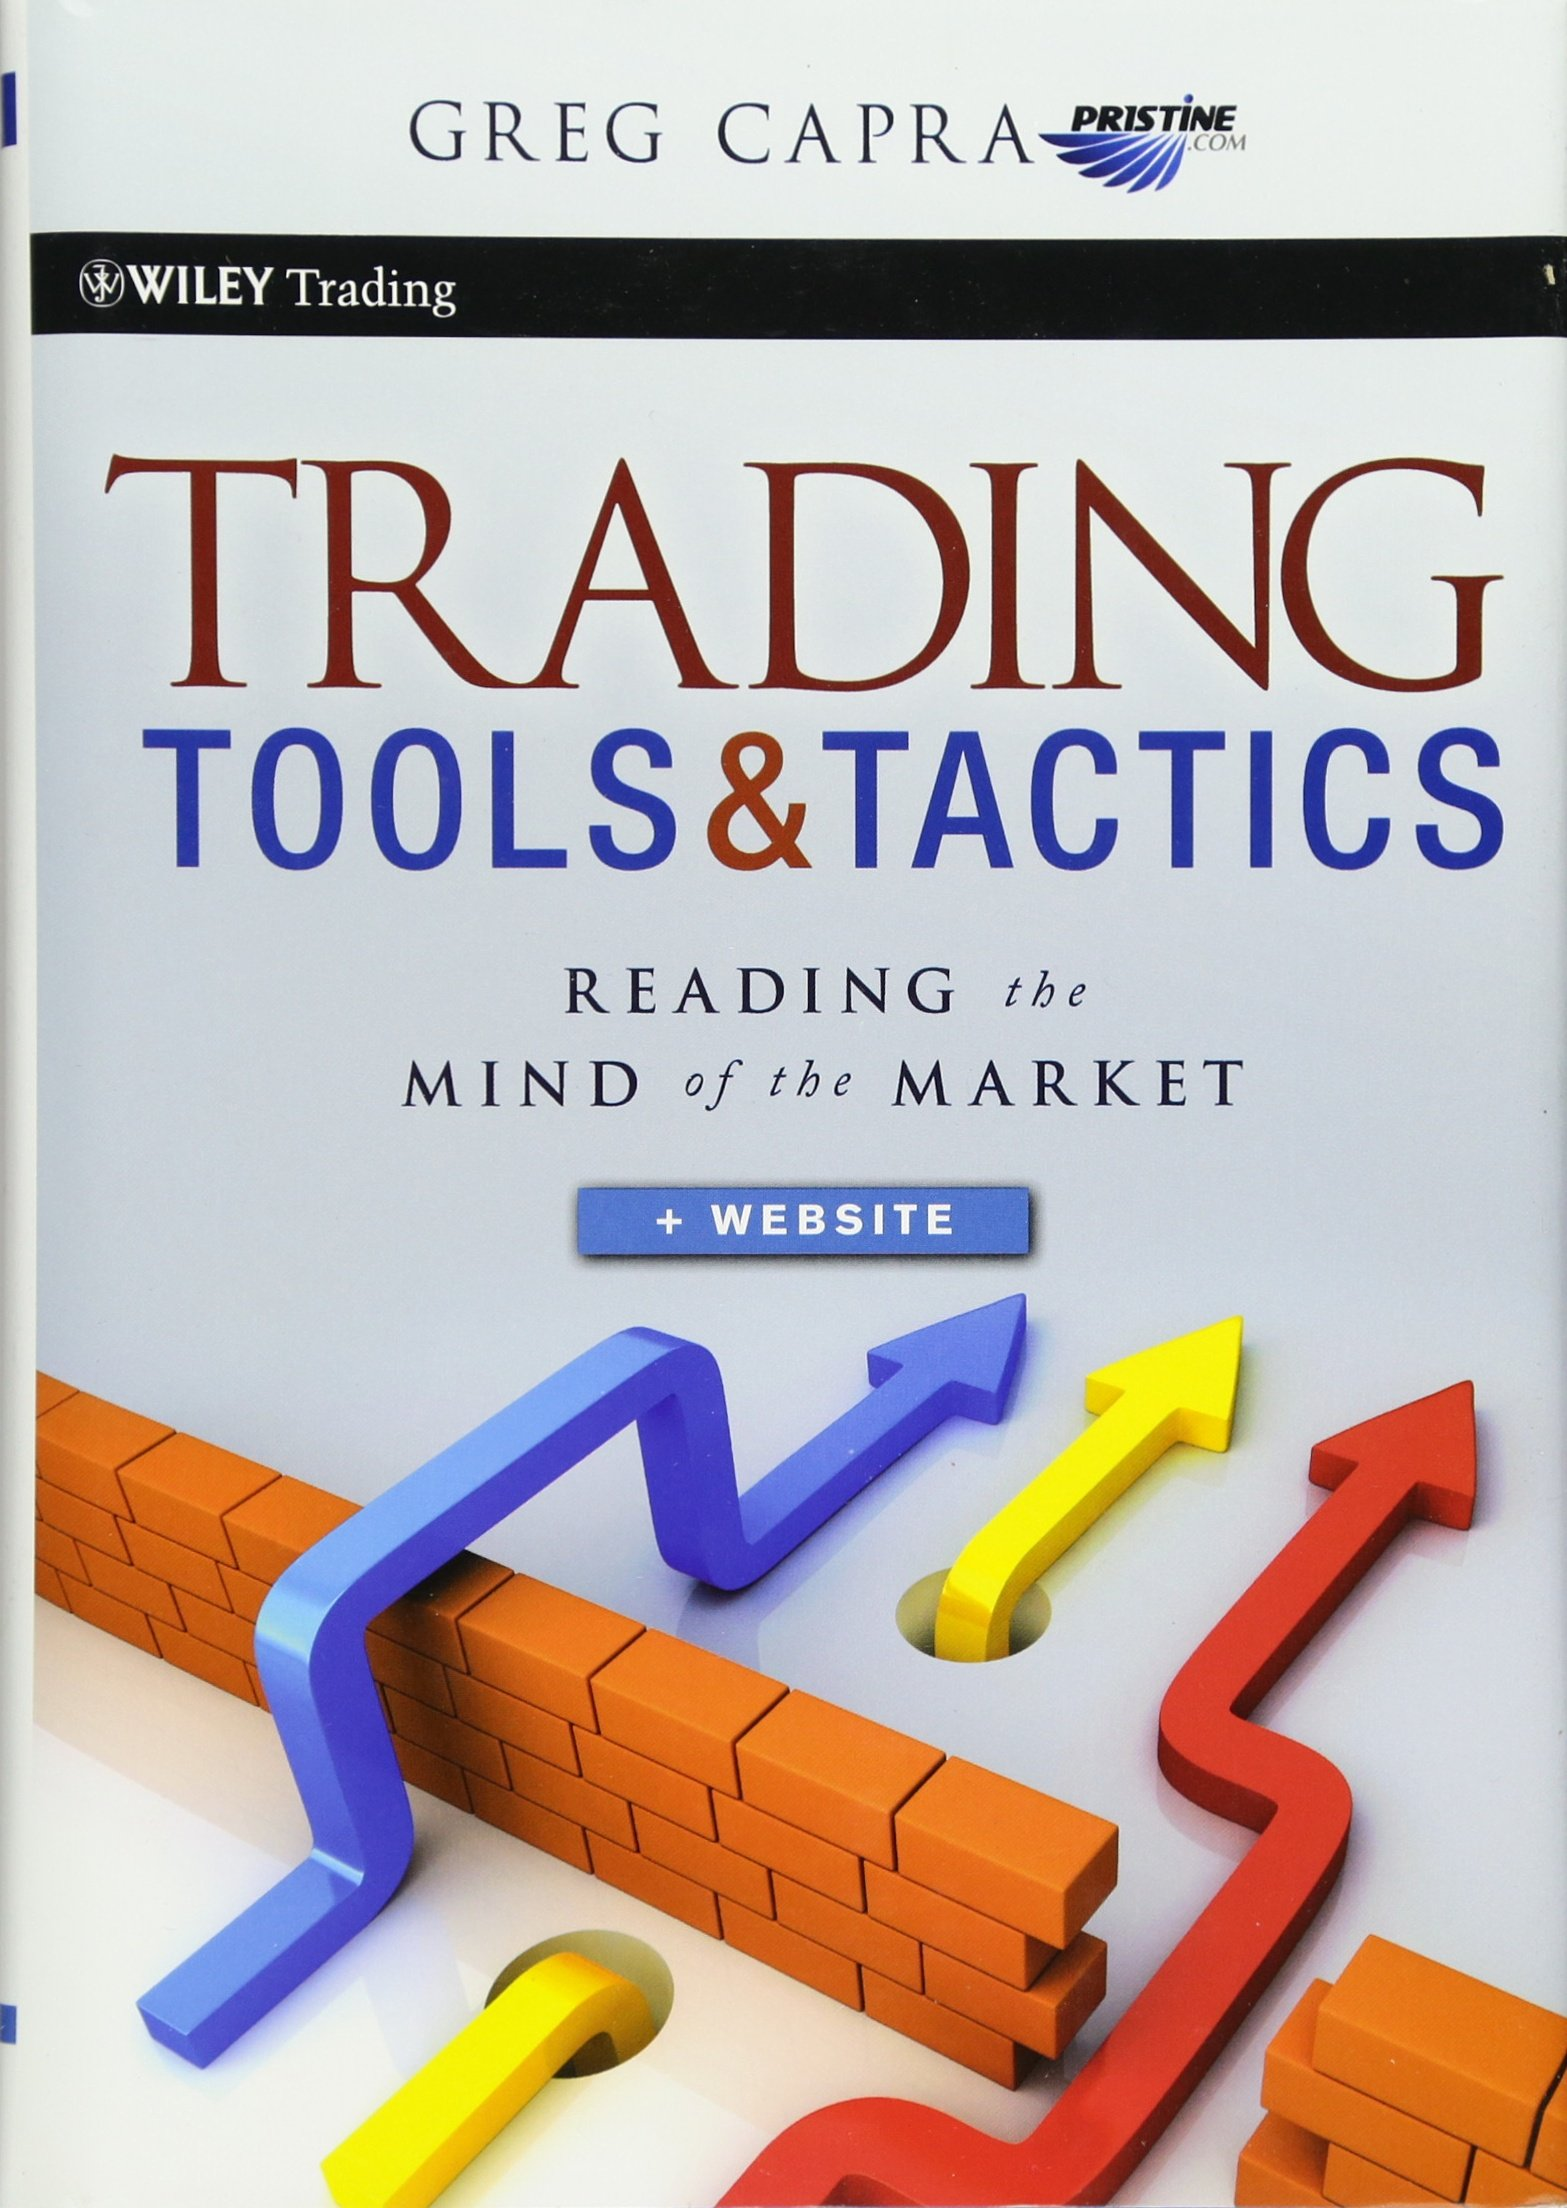 Trading Tools Tactics Website Reading product image